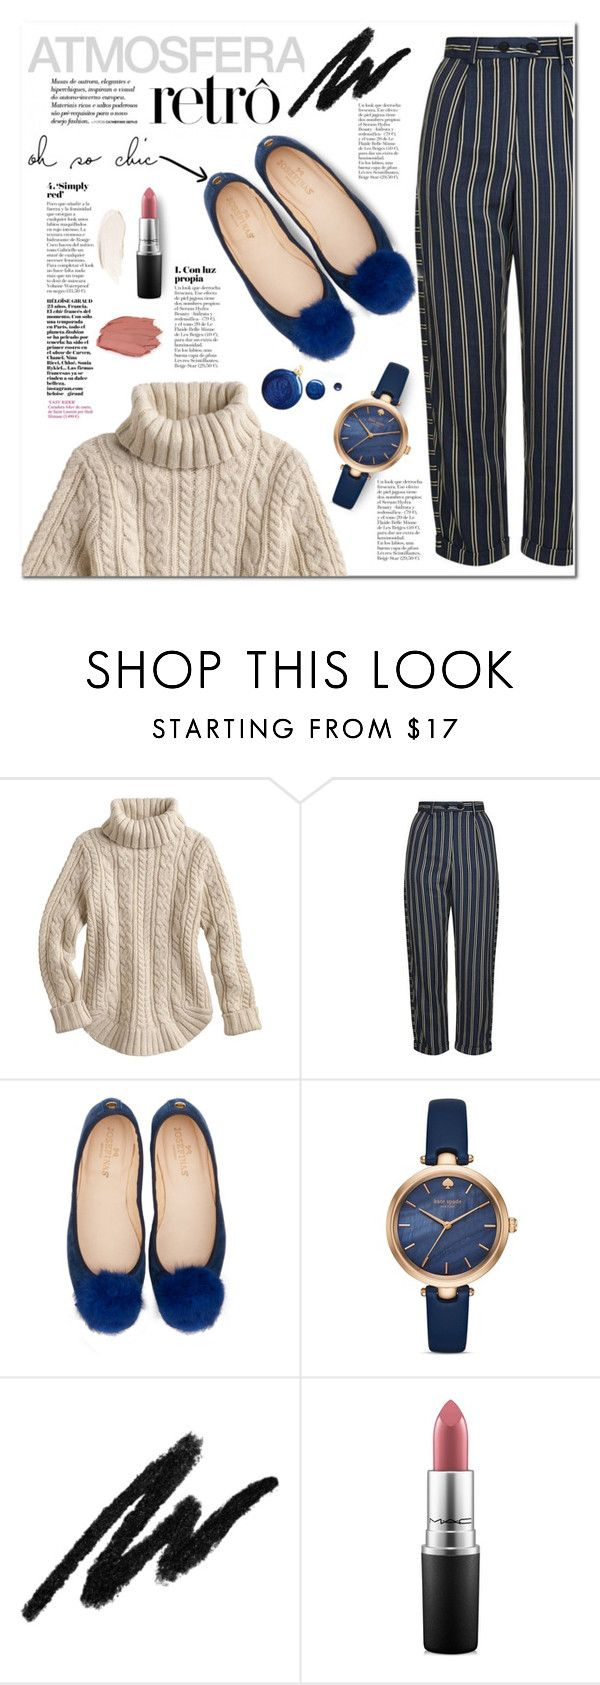 """""""Atmosfera Retrò"""" by alexispengu ❤ liked on Polyvore featuring Topshop, Kate Spade and MAC Cosmetics"""